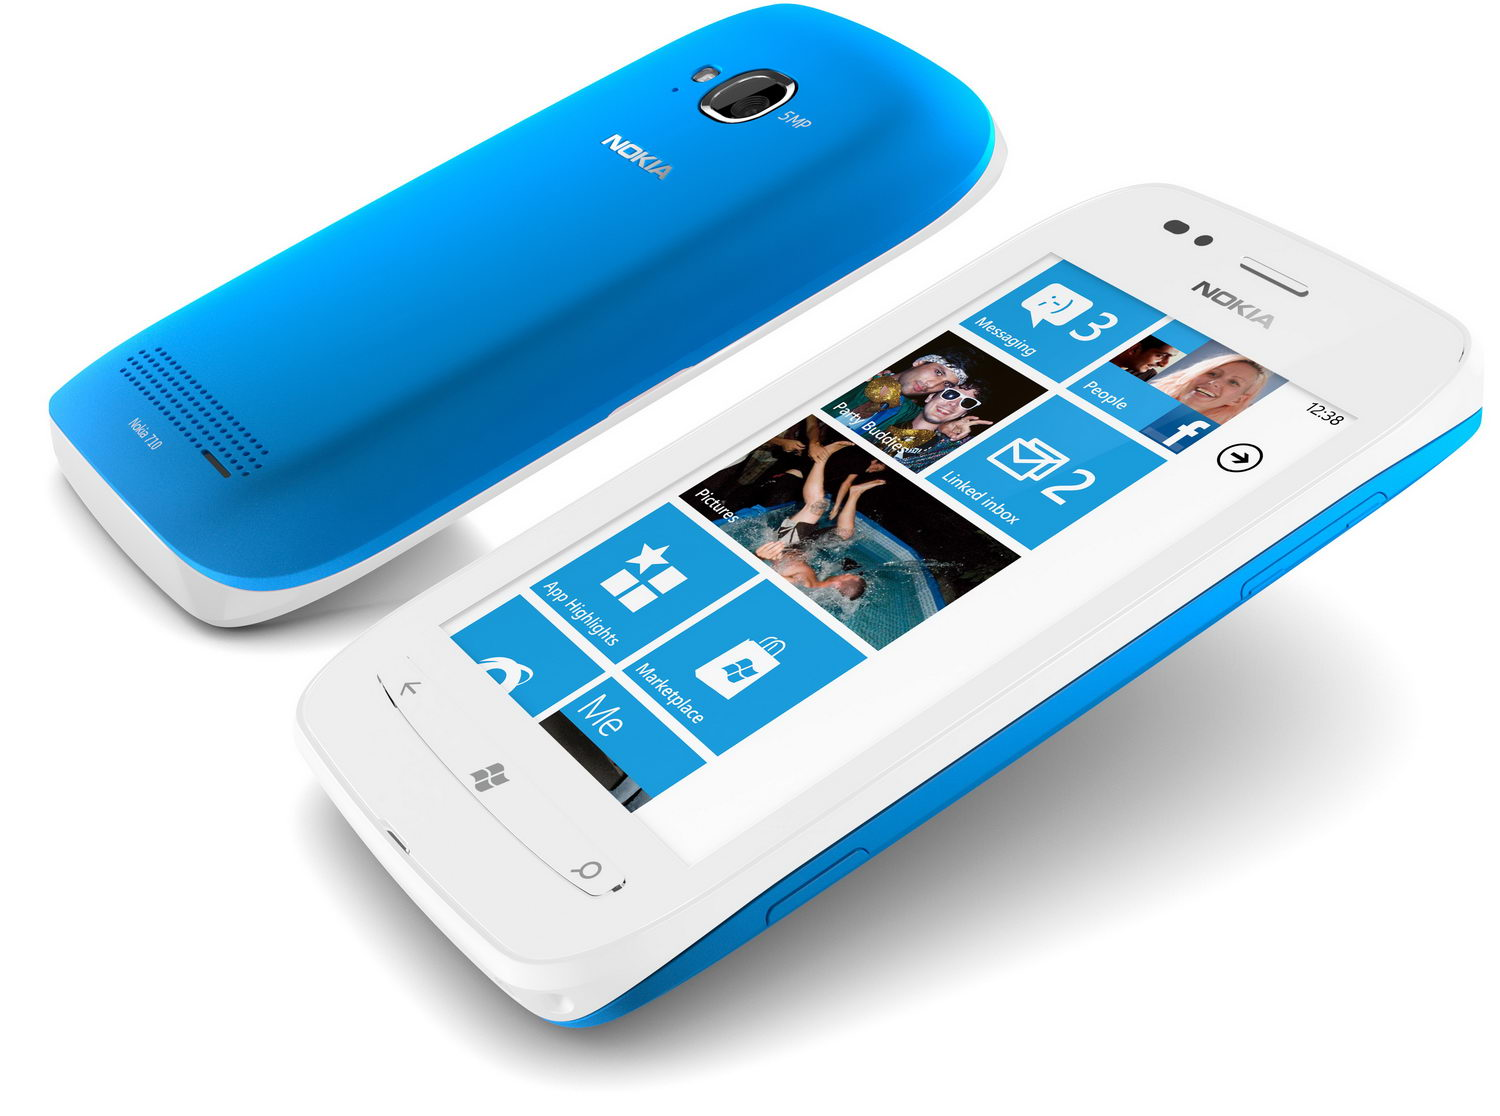 Lumia 710 running Windows Phone 7